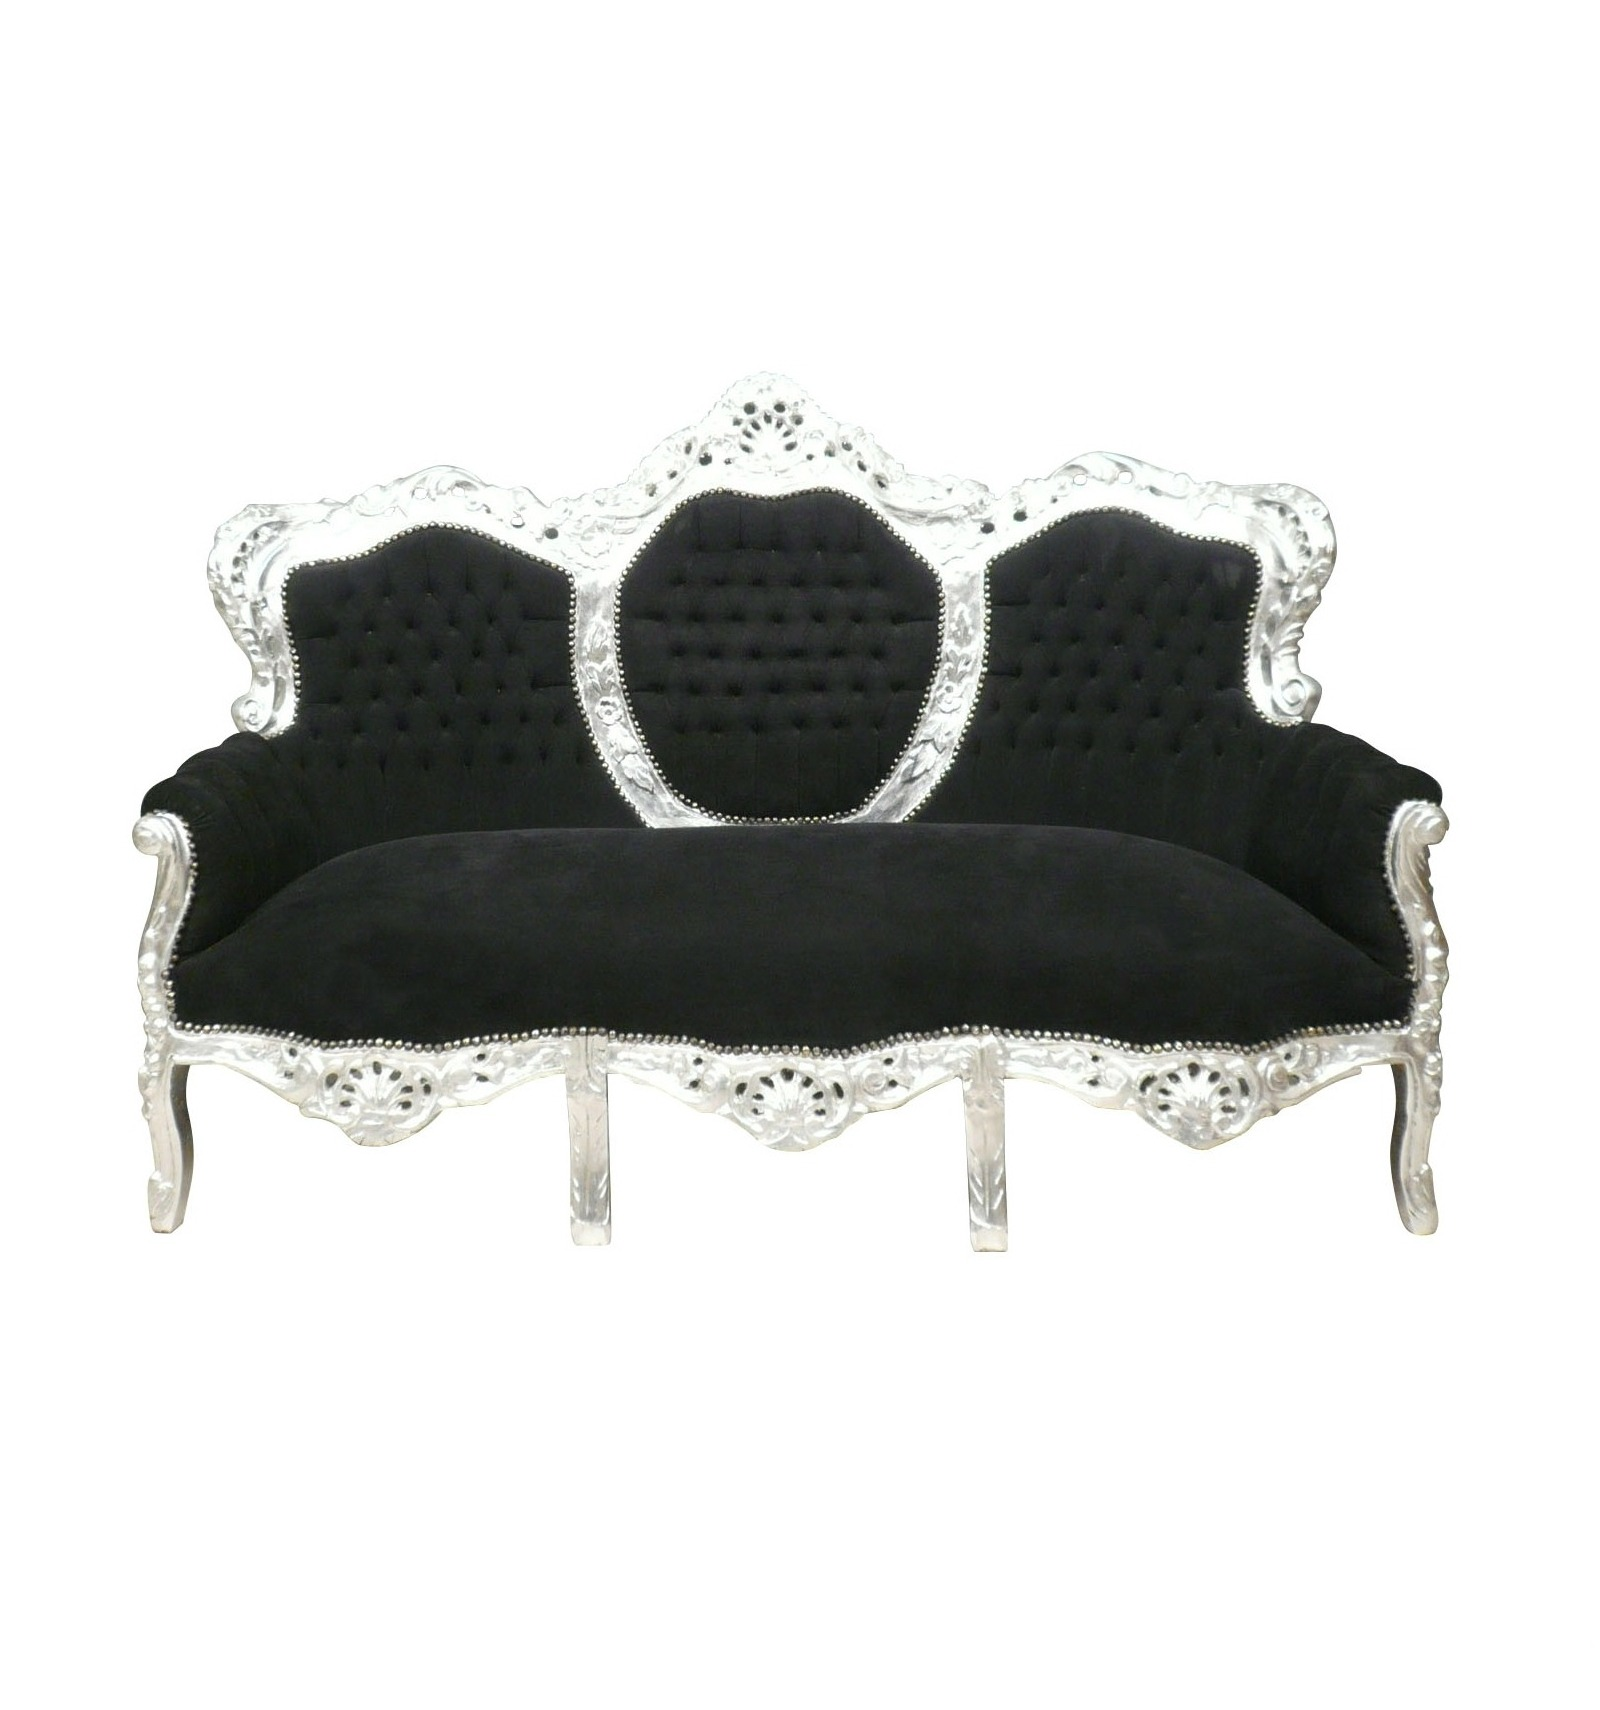 canap baroque noir et argent fauteuil baroque meuble baroque. Black Bedroom Furniture Sets. Home Design Ideas